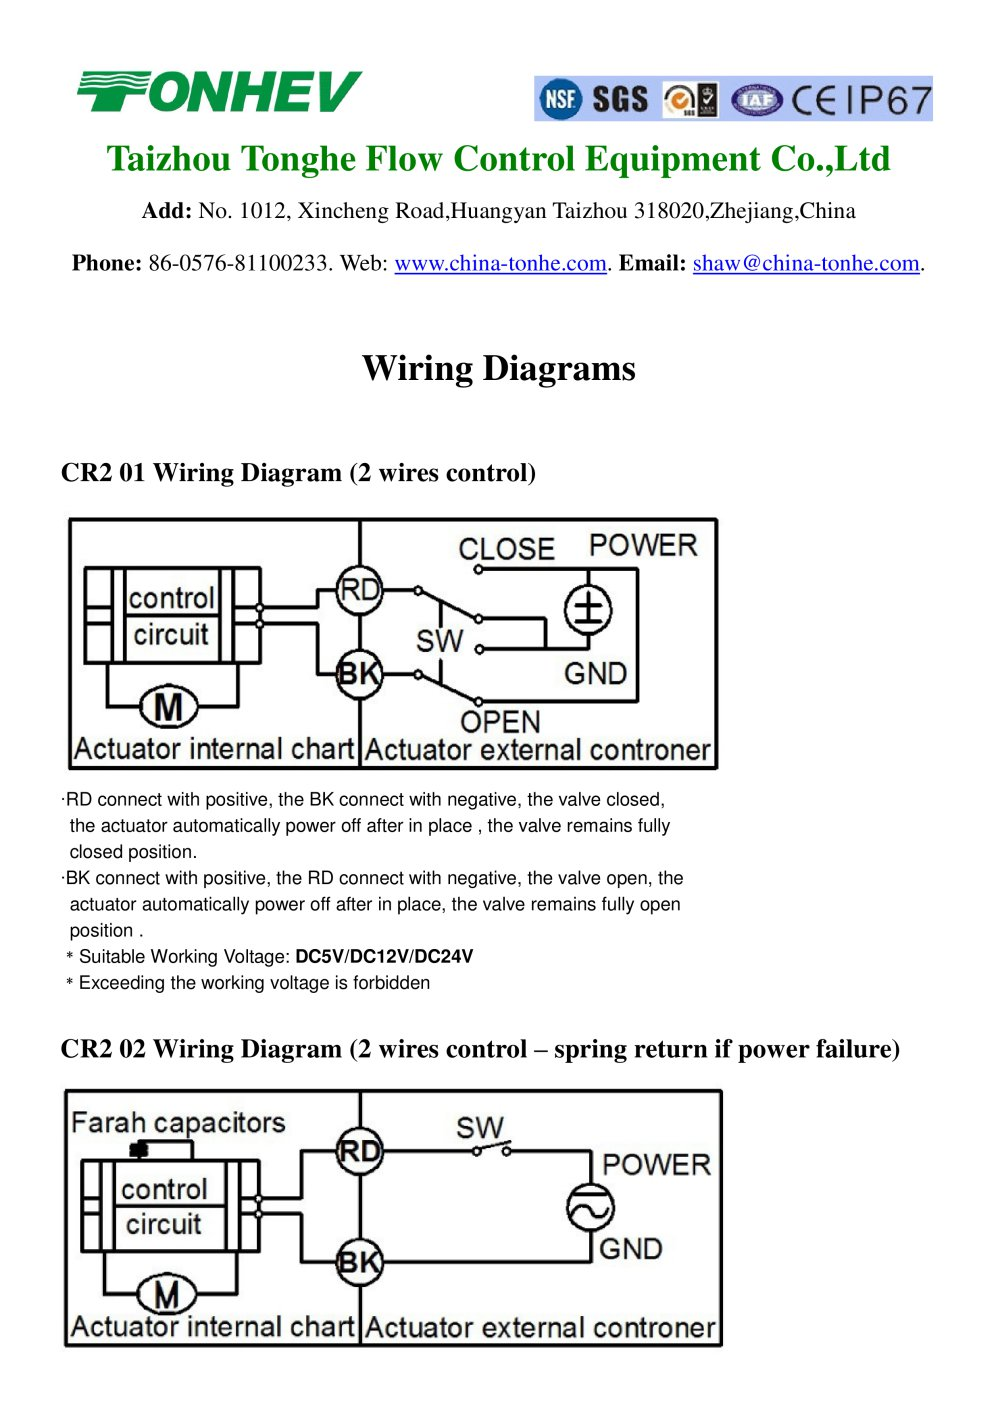 tonhe motorized valve wiring diagrams taizhou tonhe flow controltonhe motorized valve wiring diagrams 1 4 pages